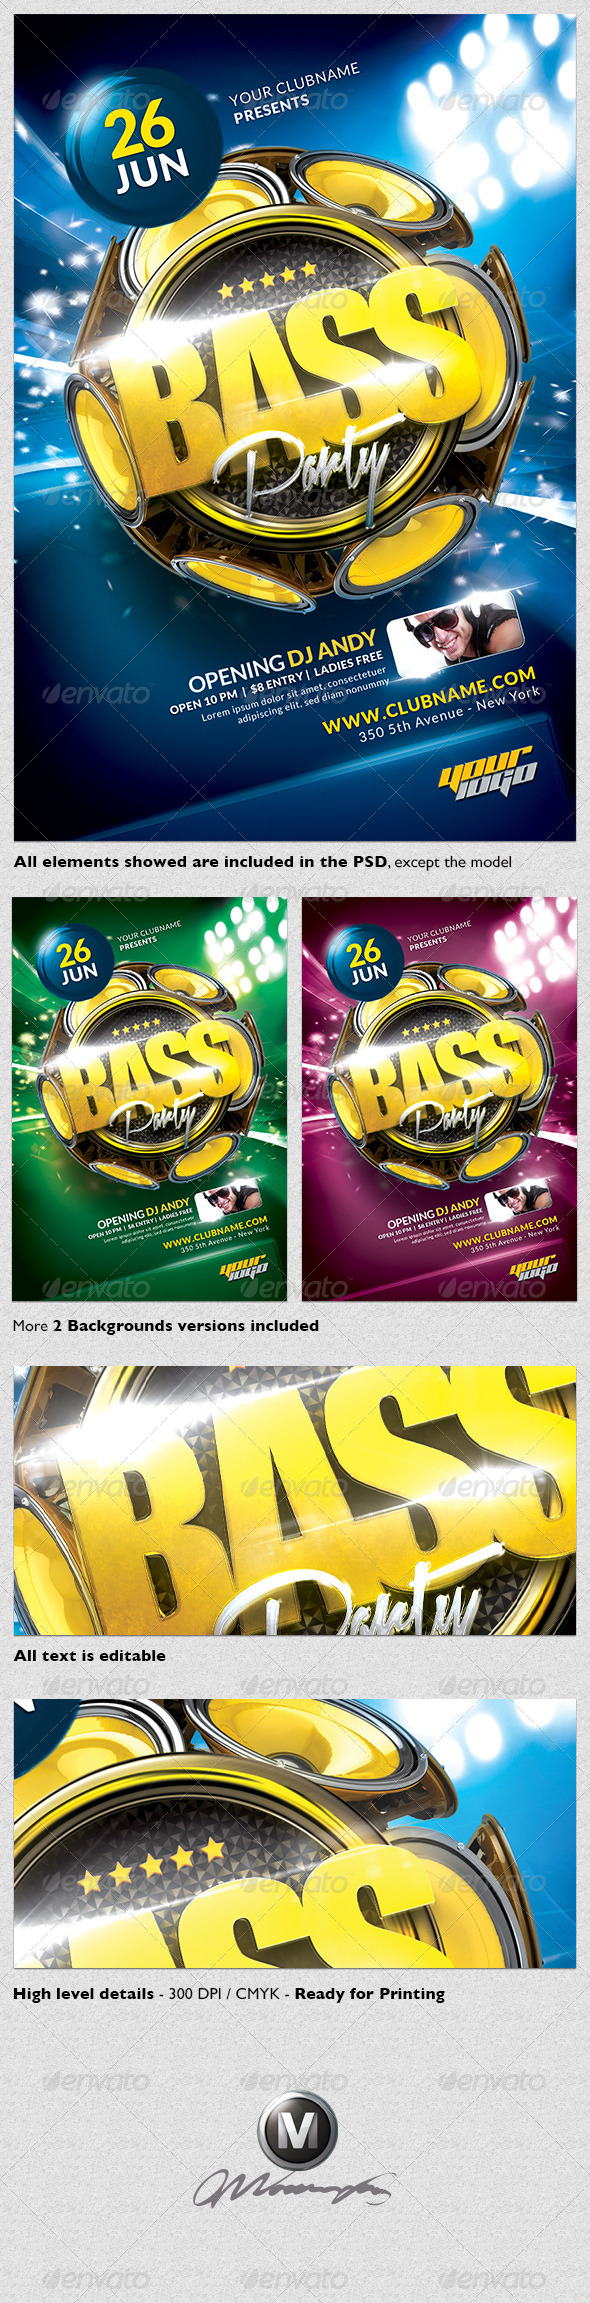 Bass Party Flyer Template - Clubs & Parties Events